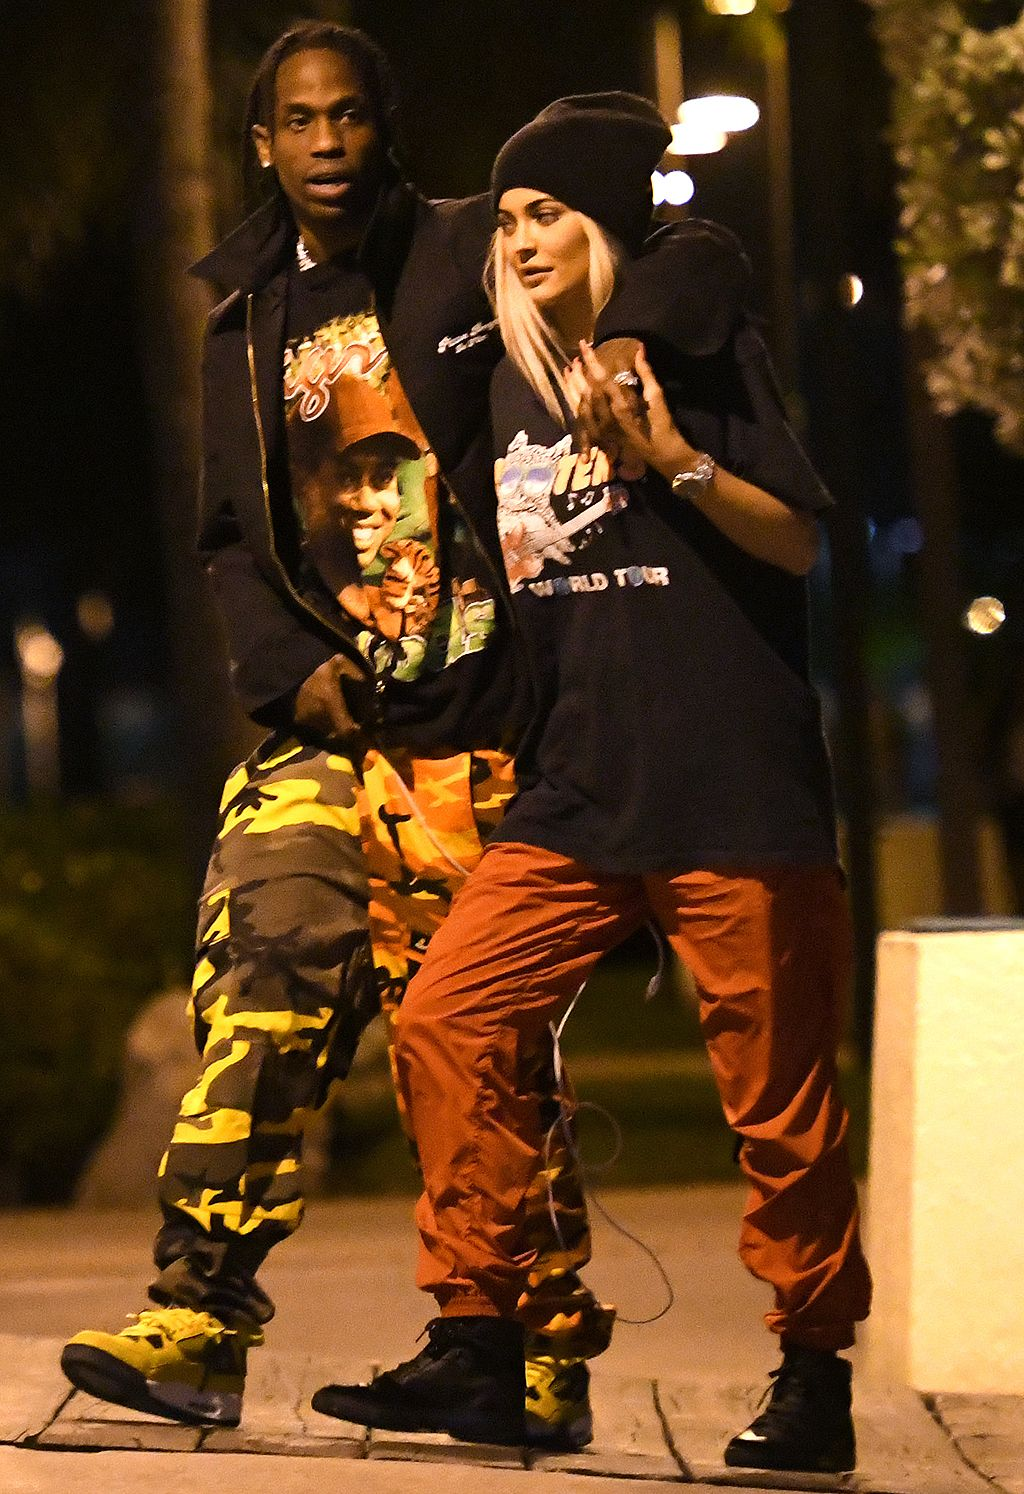 Why New Parents Kylie Jenner Amp Travis Scott Are Not Officially Living Together Source Kylie Travis Travis Scott Kylie Jenner Kylie Jenner Style Travis is currently positioned to make the best album of his career. pinterest